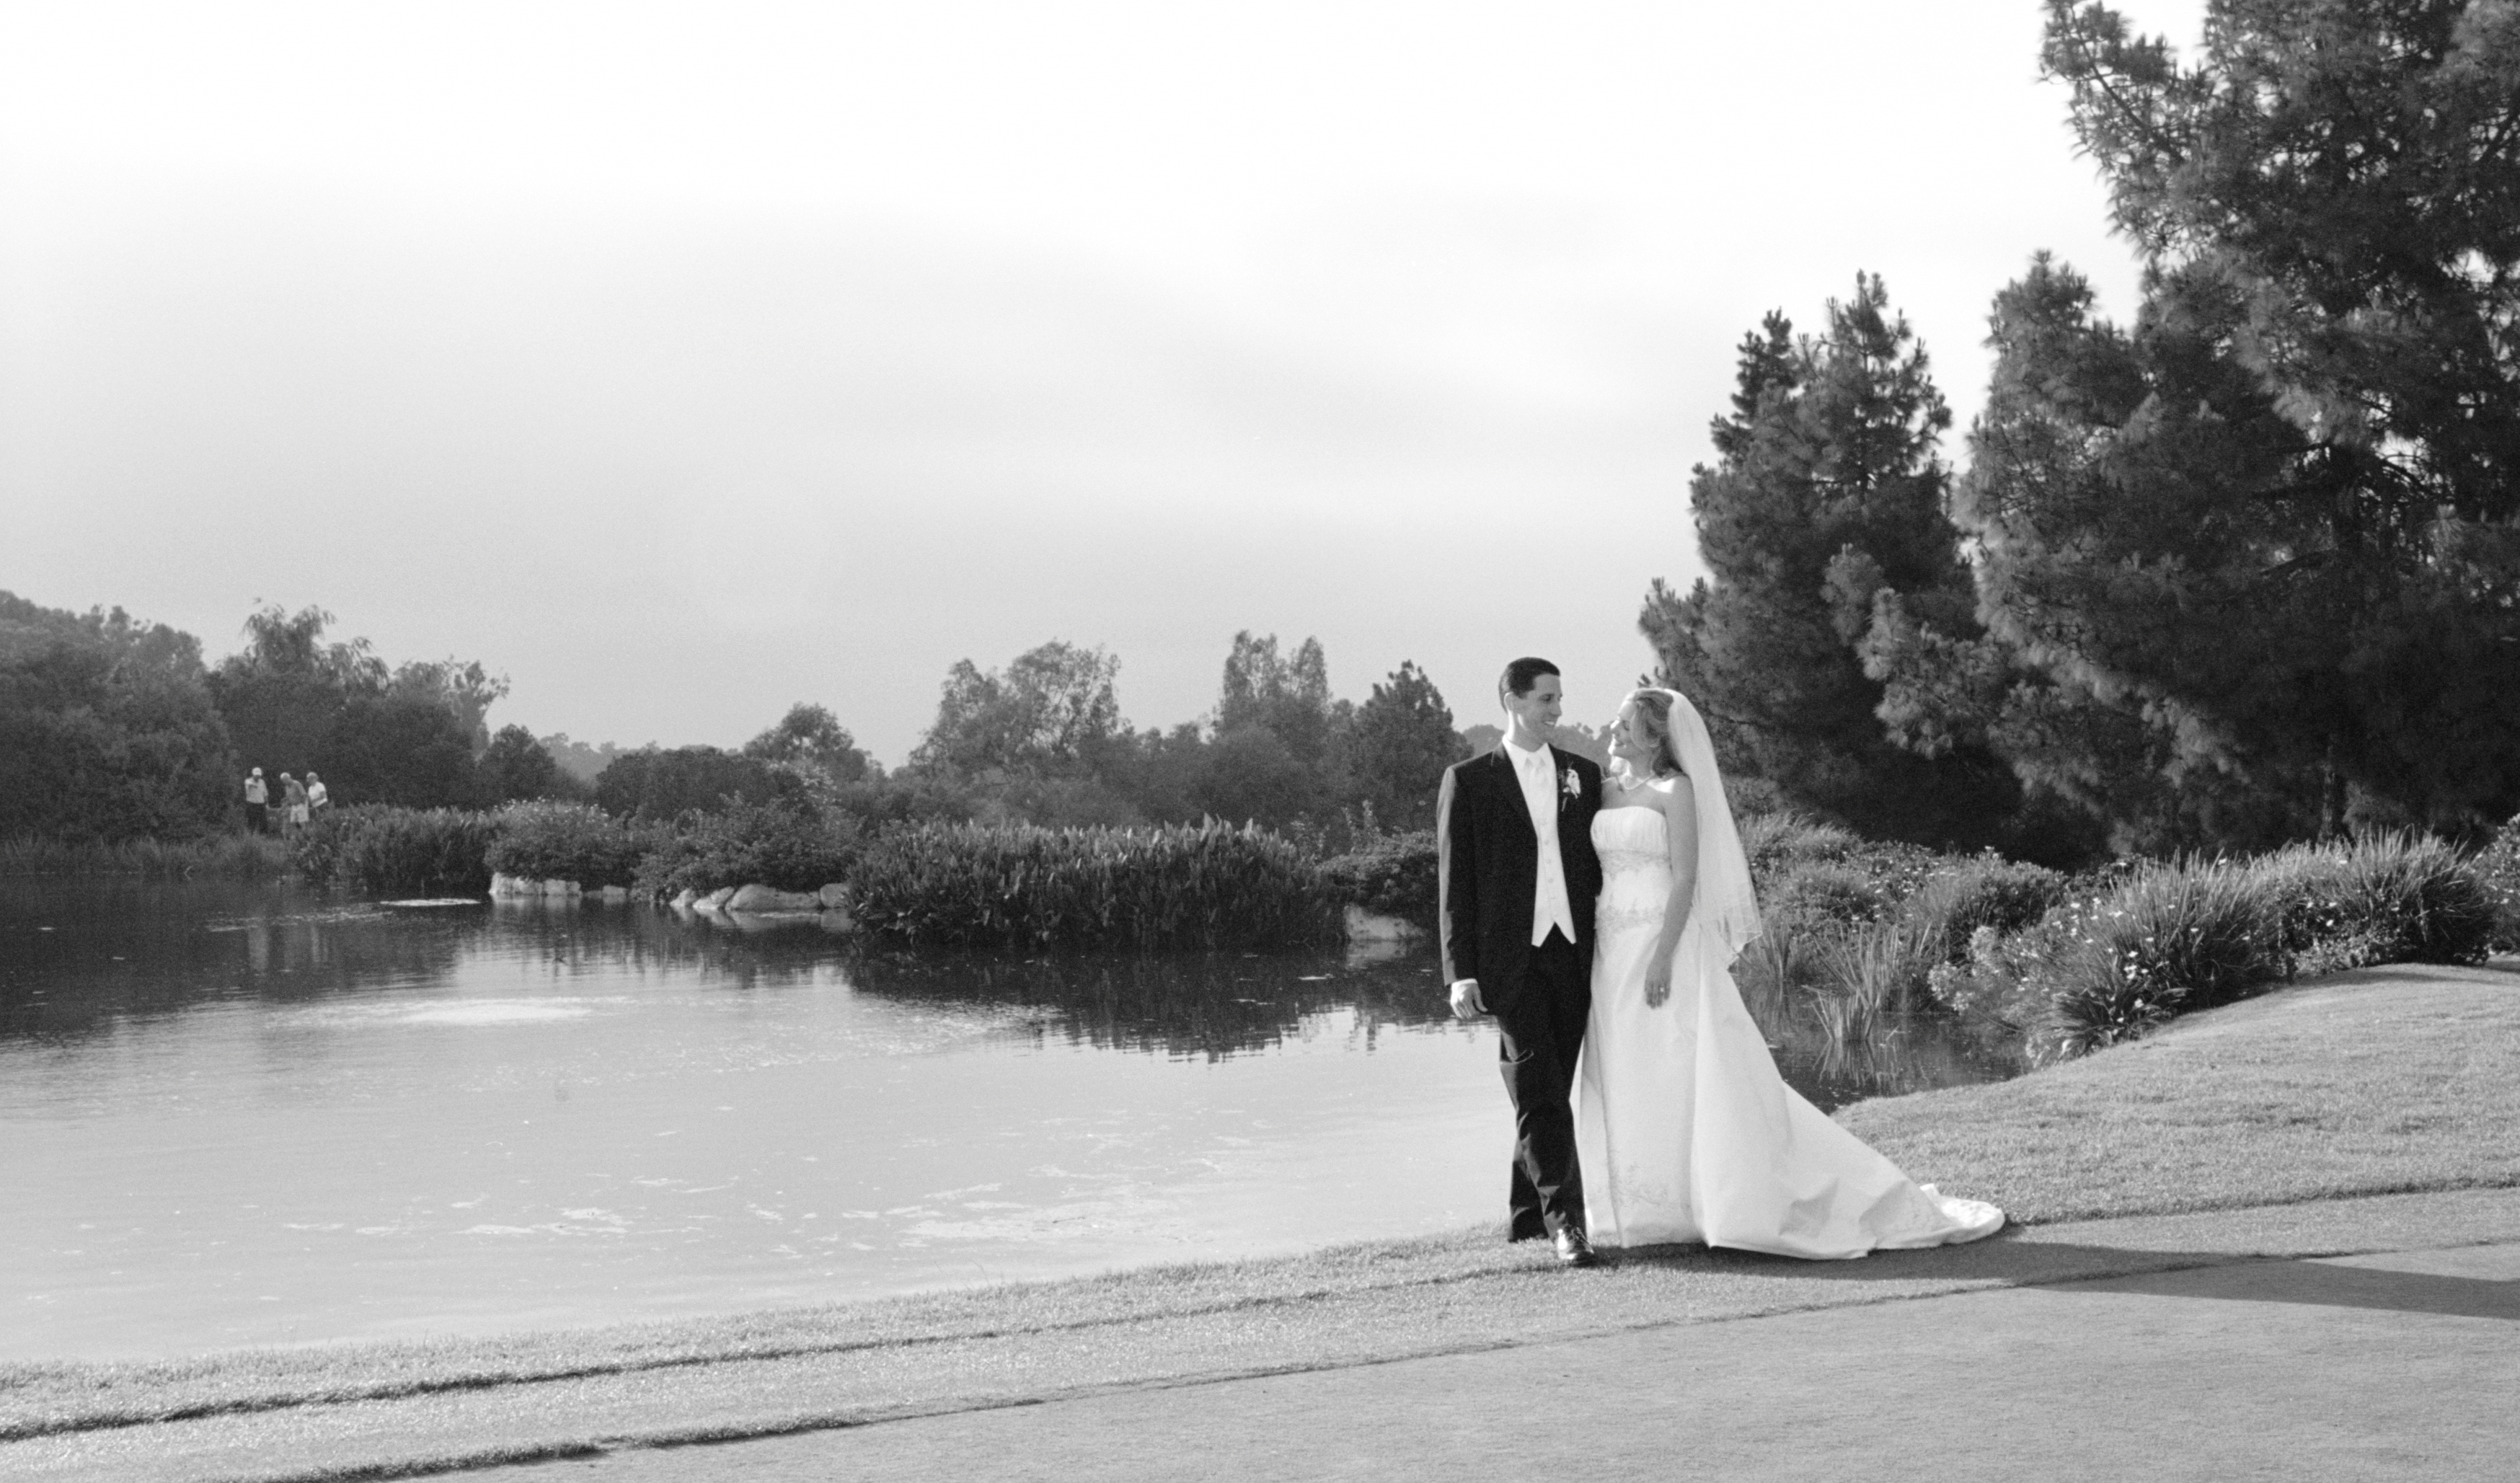 white, black, Bride, Groom, Weddings, Beautiful, Lake